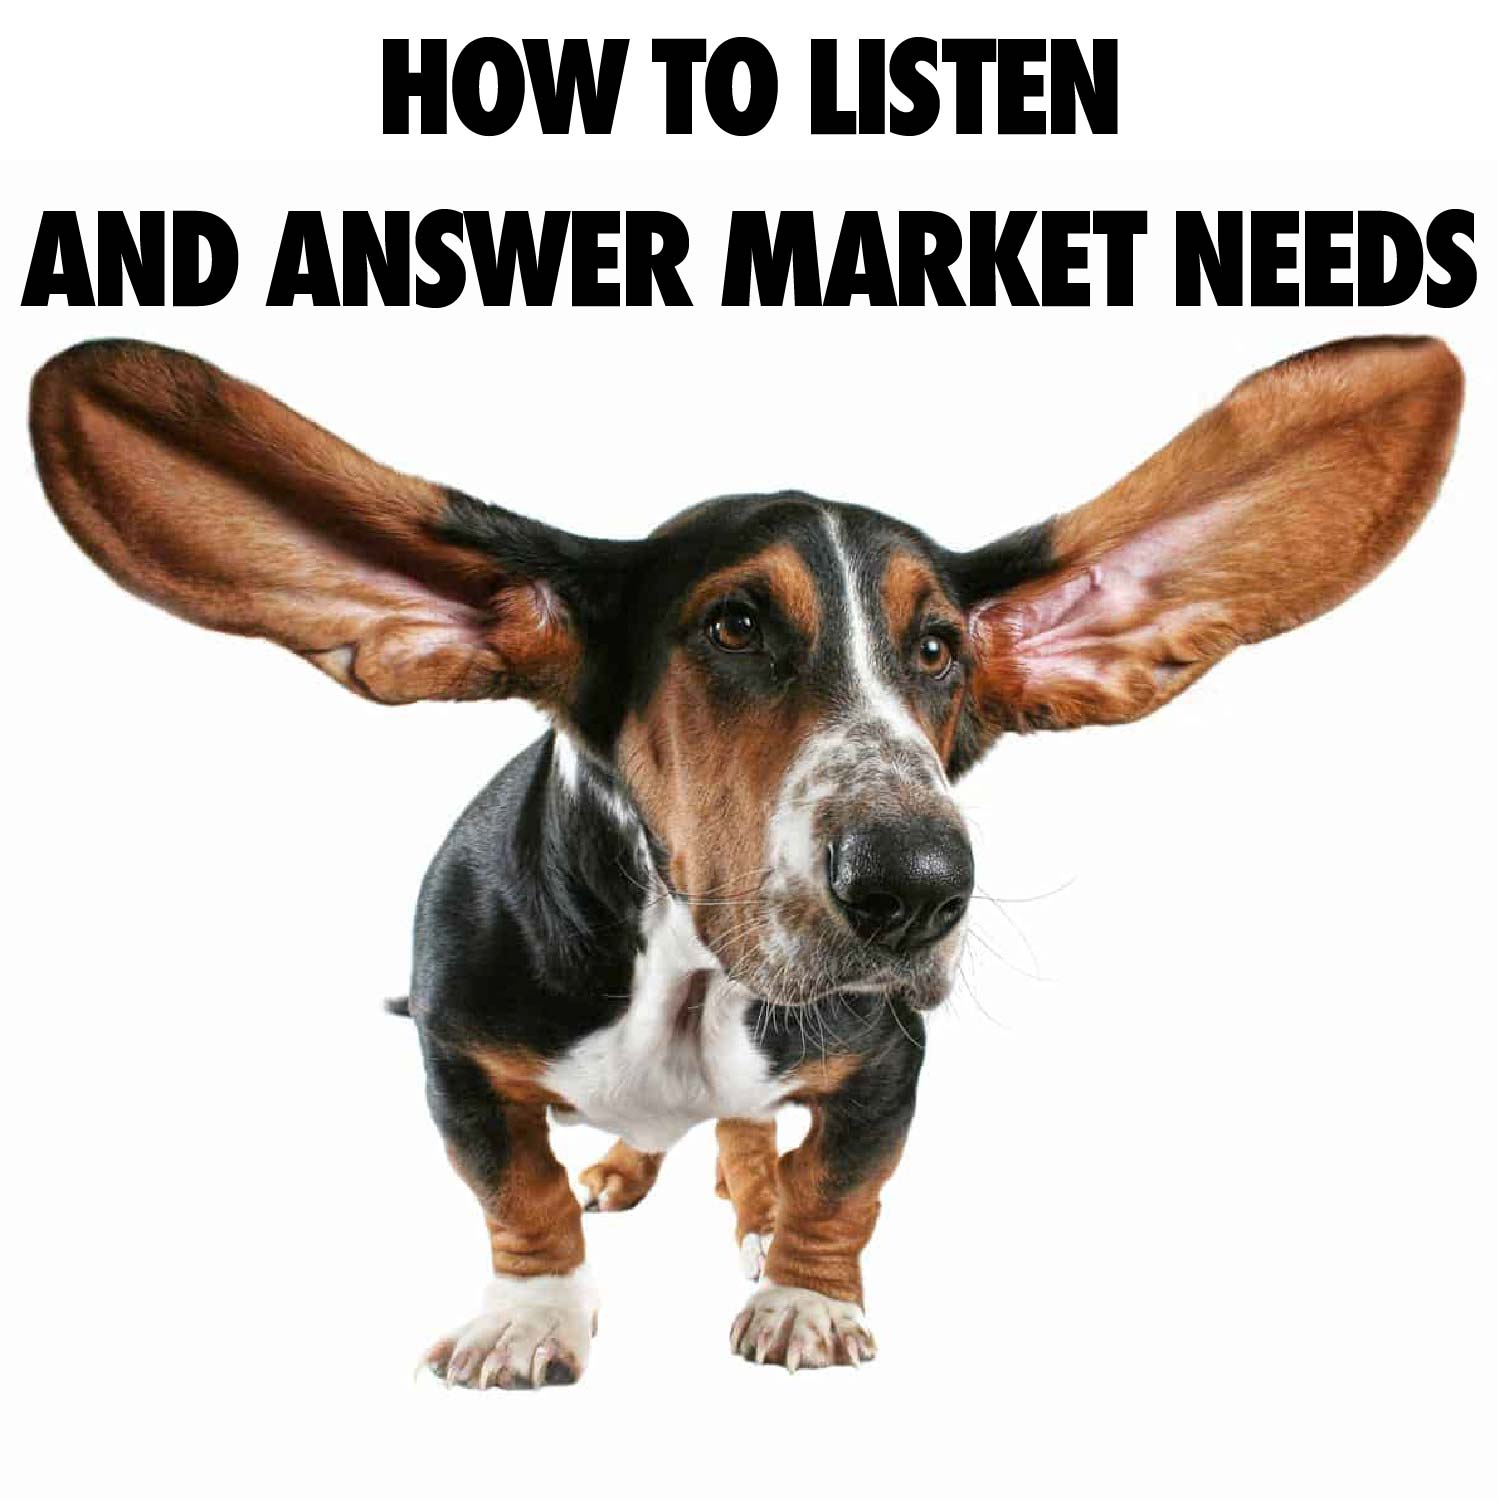 Image of a short dog with VERY big ears spread wide. Title: HOW TO LISTEN AND ANSWER MARKET NEEDS